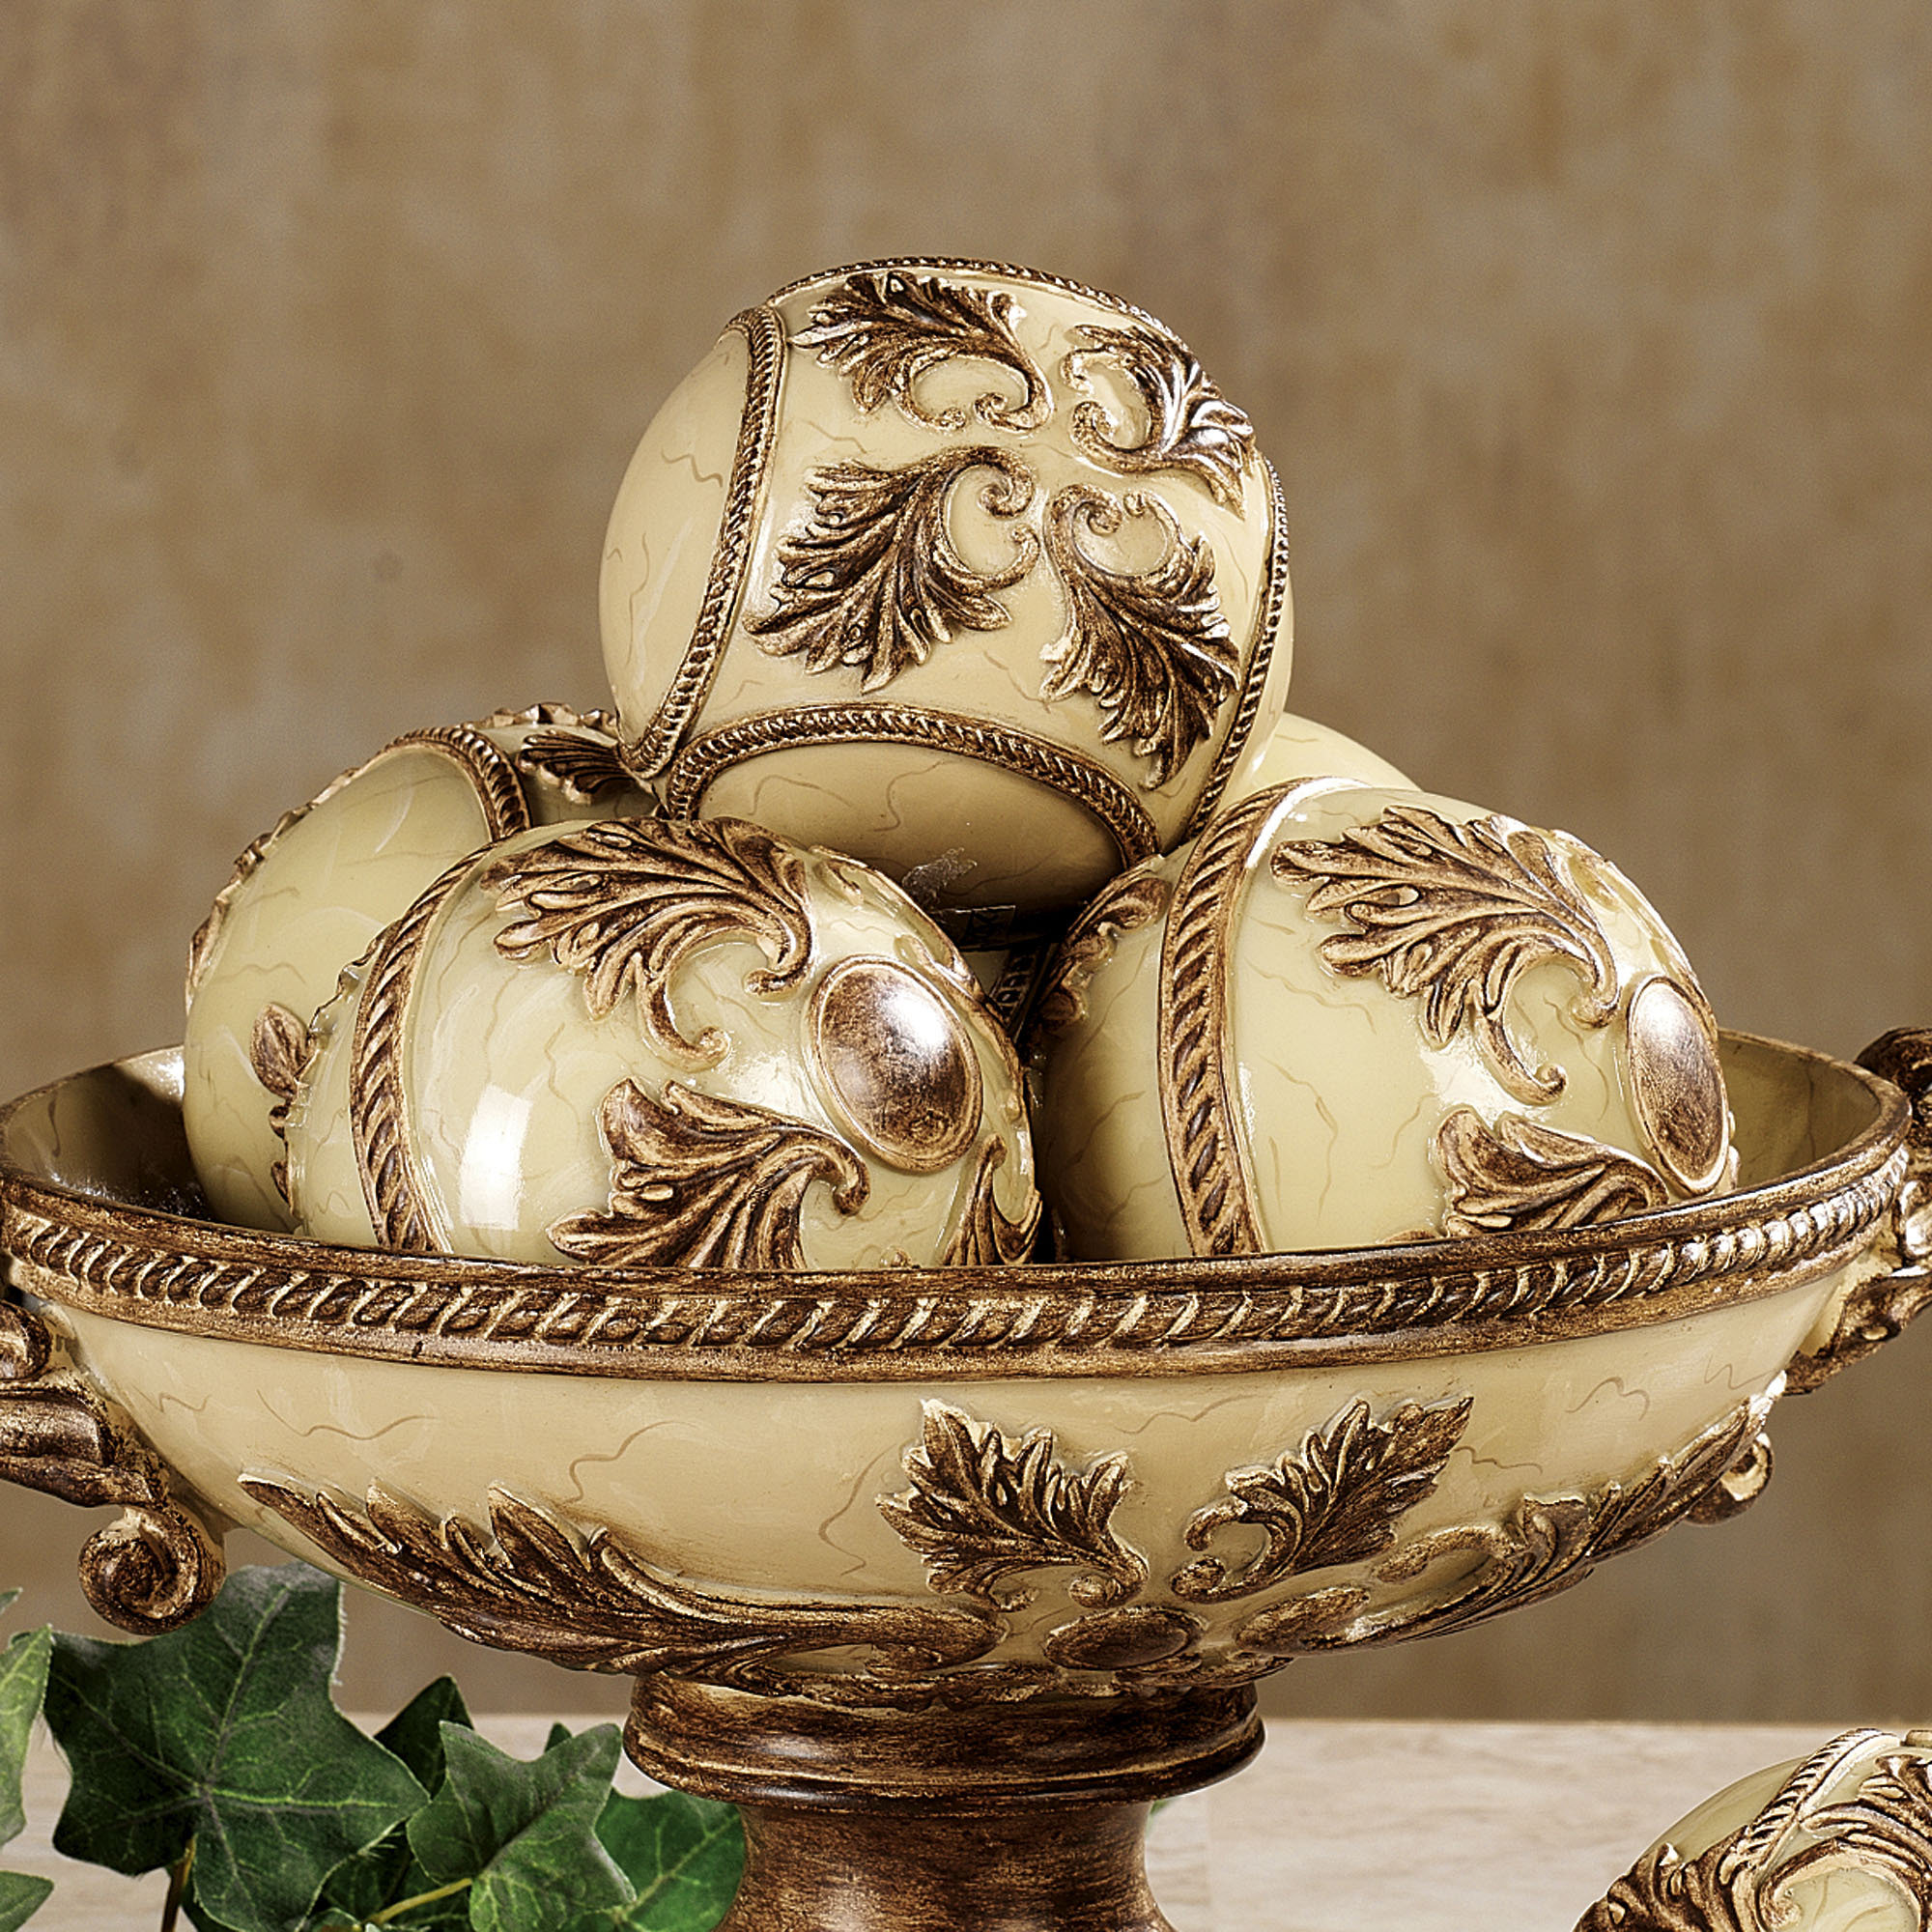 Vinelle decorative orbs in cream and luxury theme for table accessories ideas